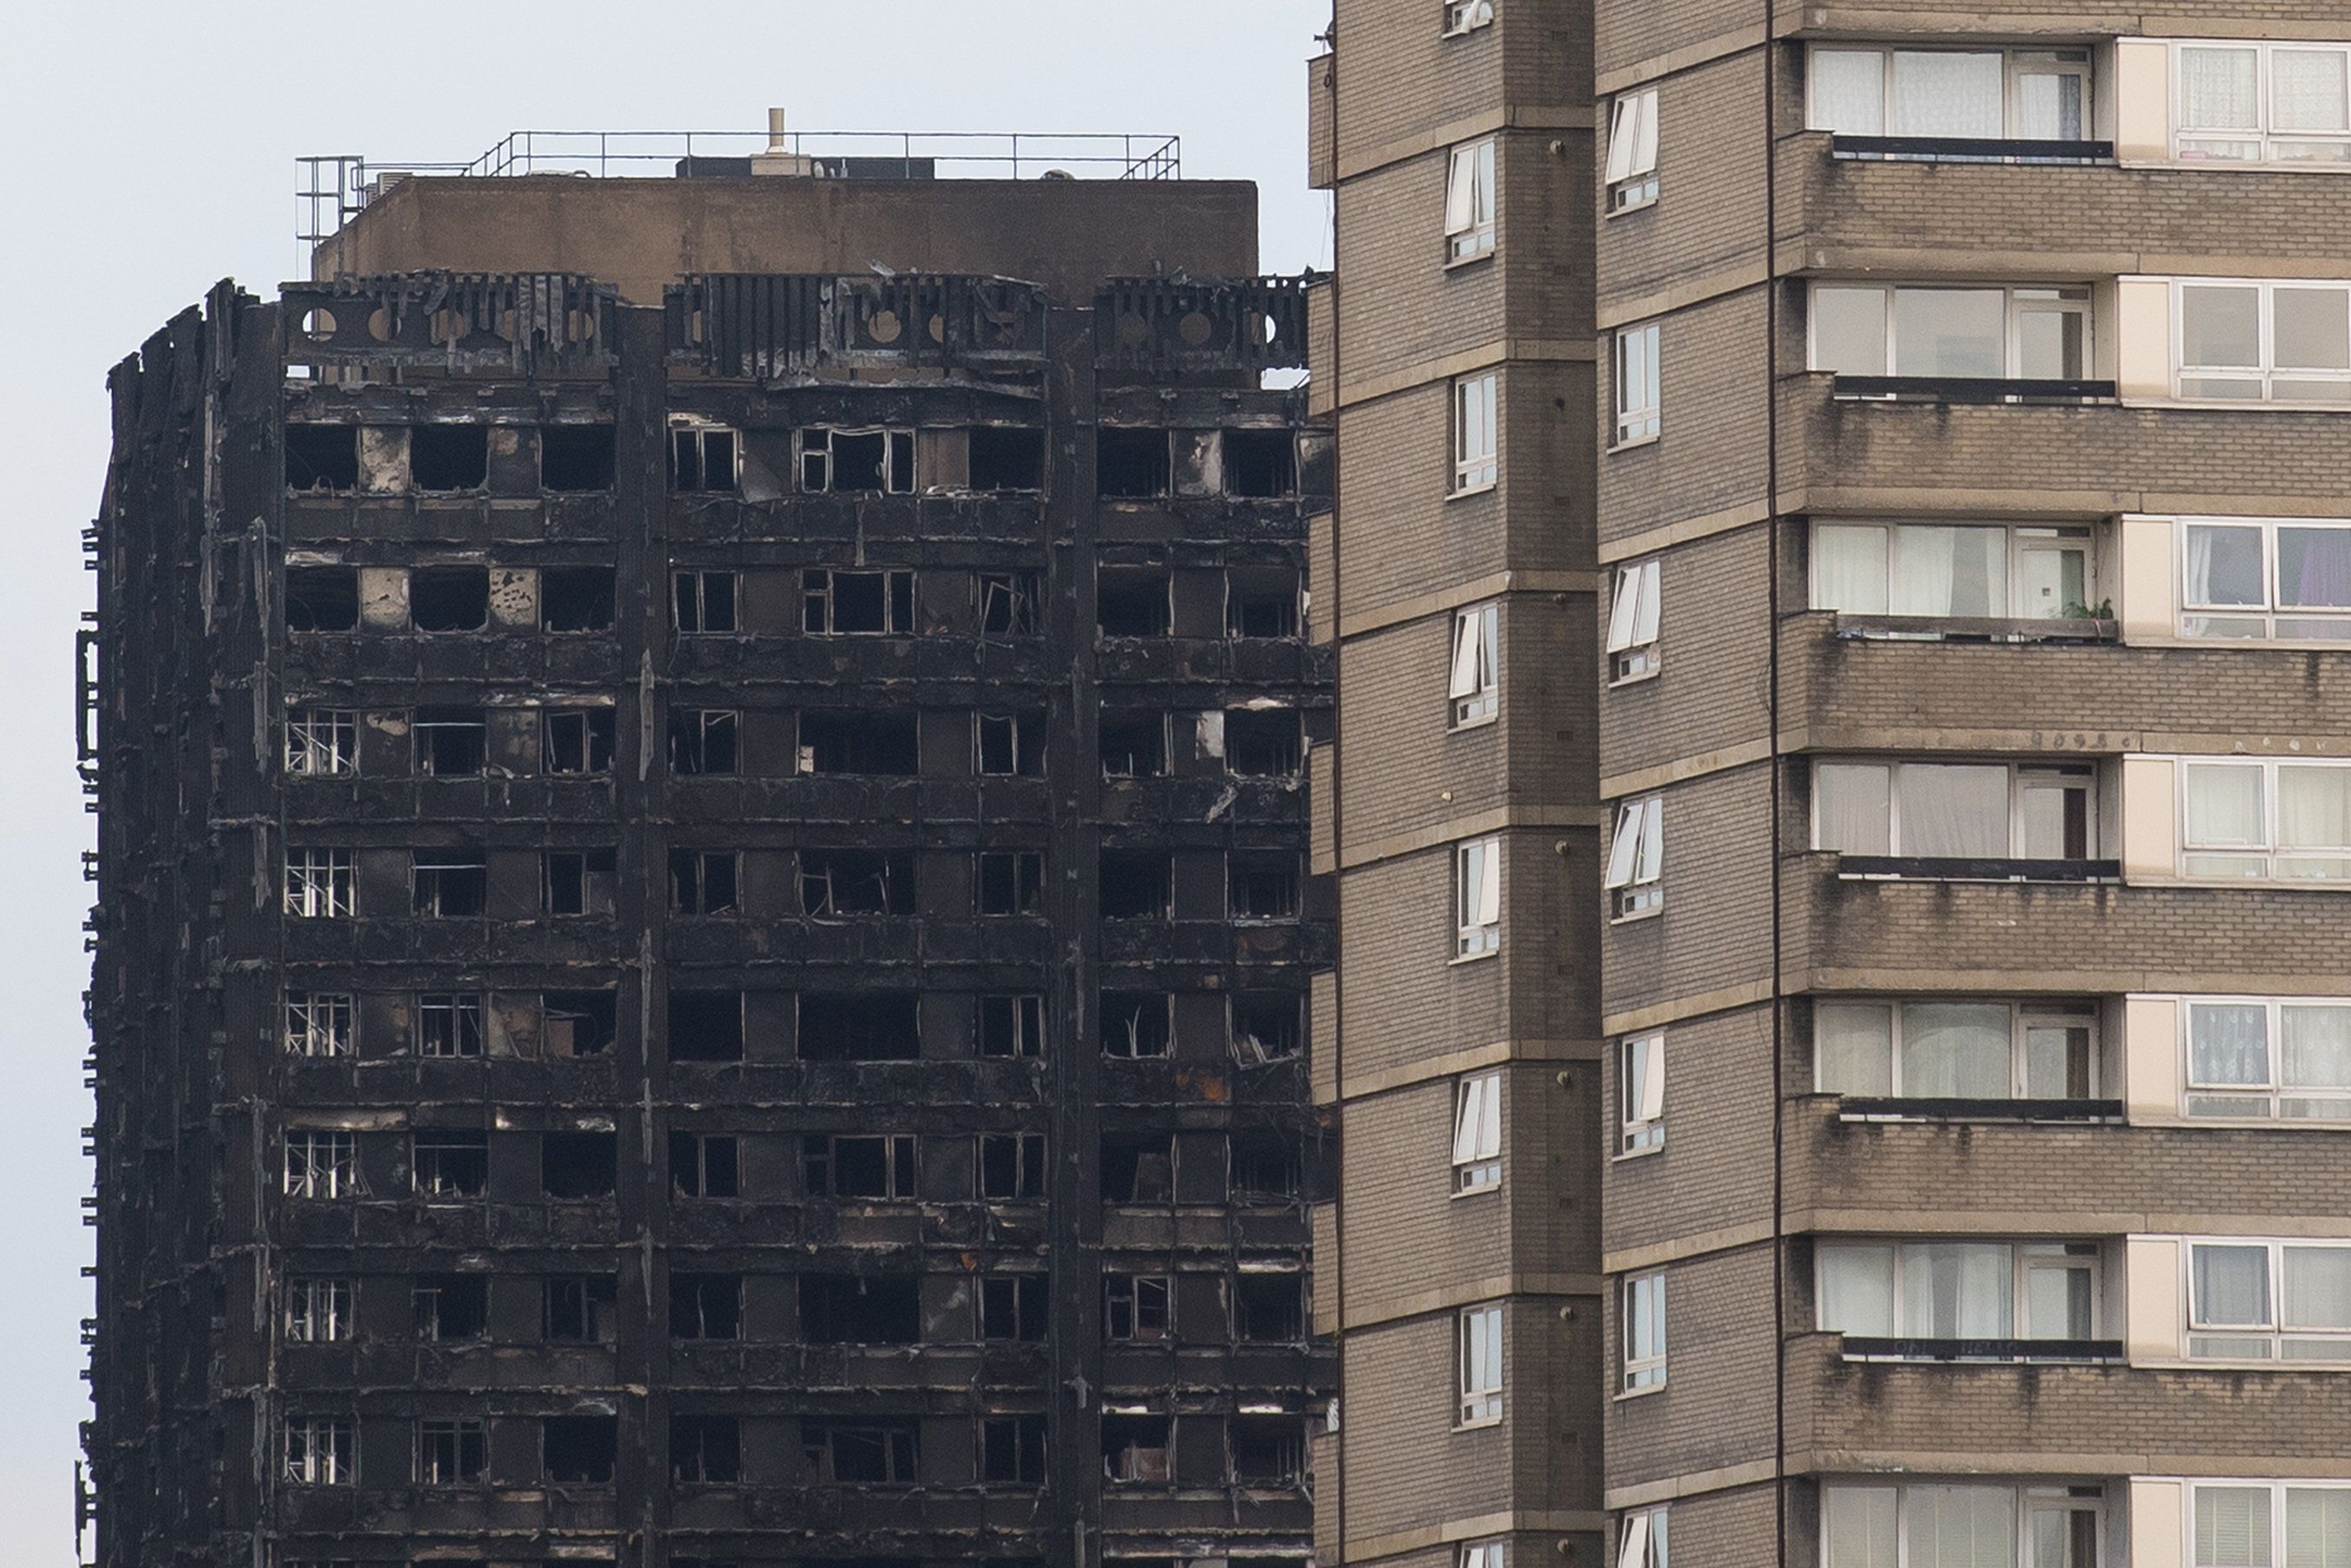 Grenfell Tower Fire: Brexit Delayed Review Of Safety Regulation, Labour MP